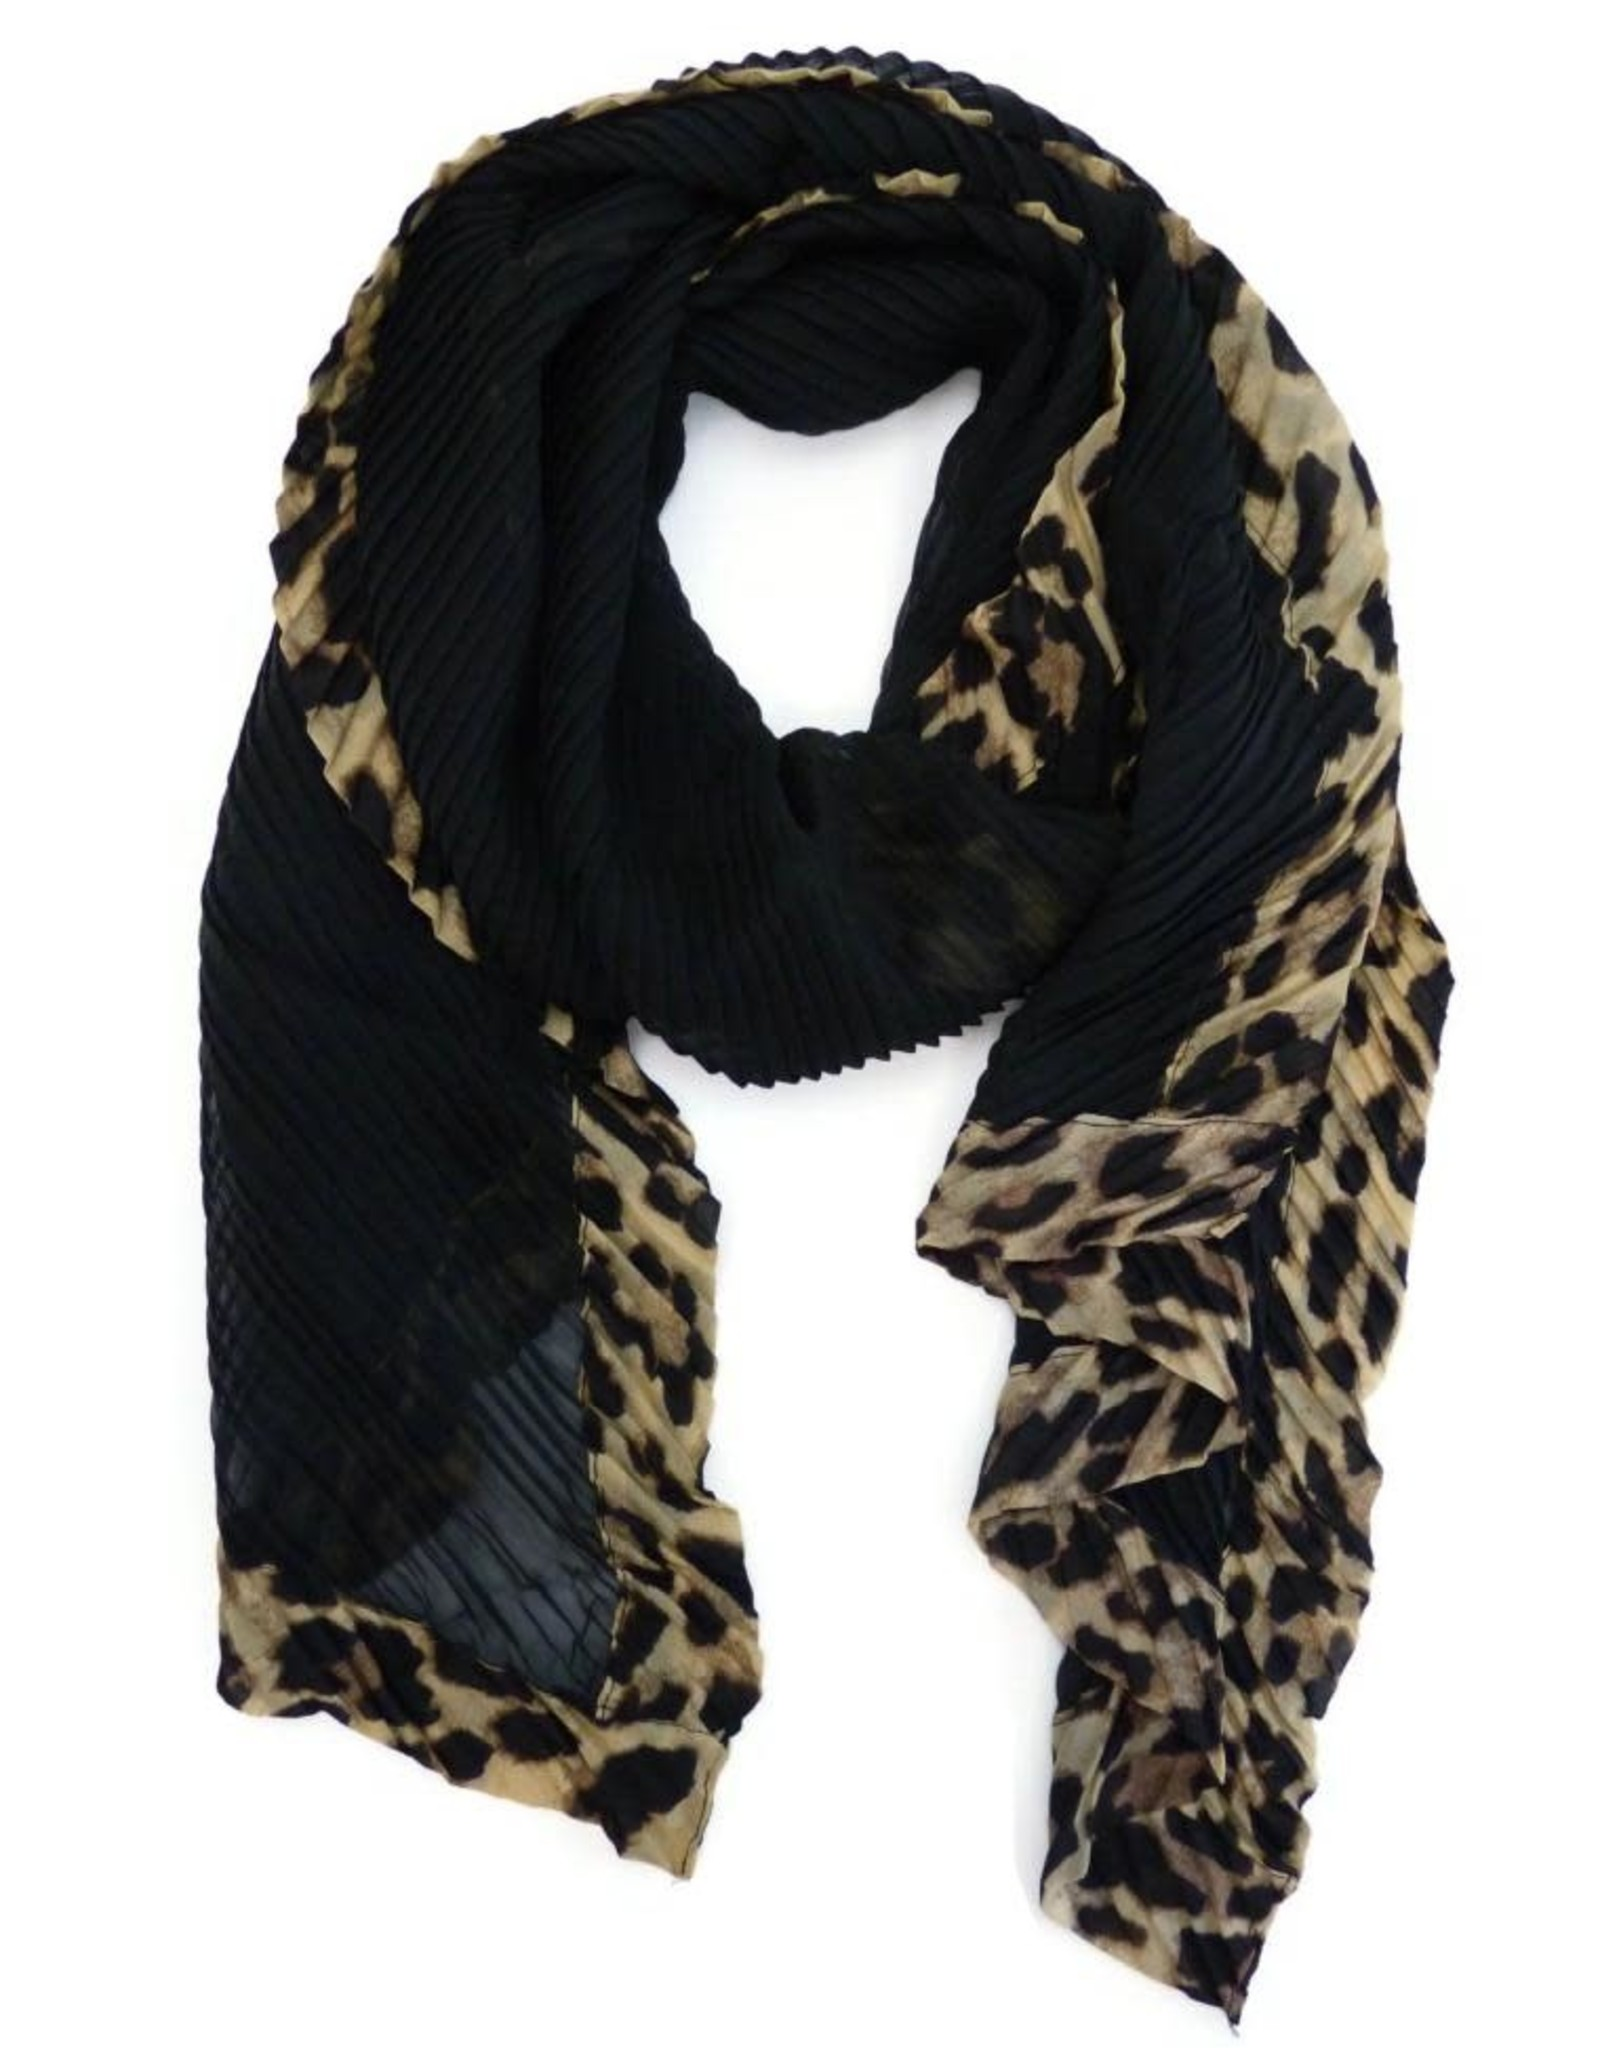 A Touch of Style Animal Print/Black Scarf